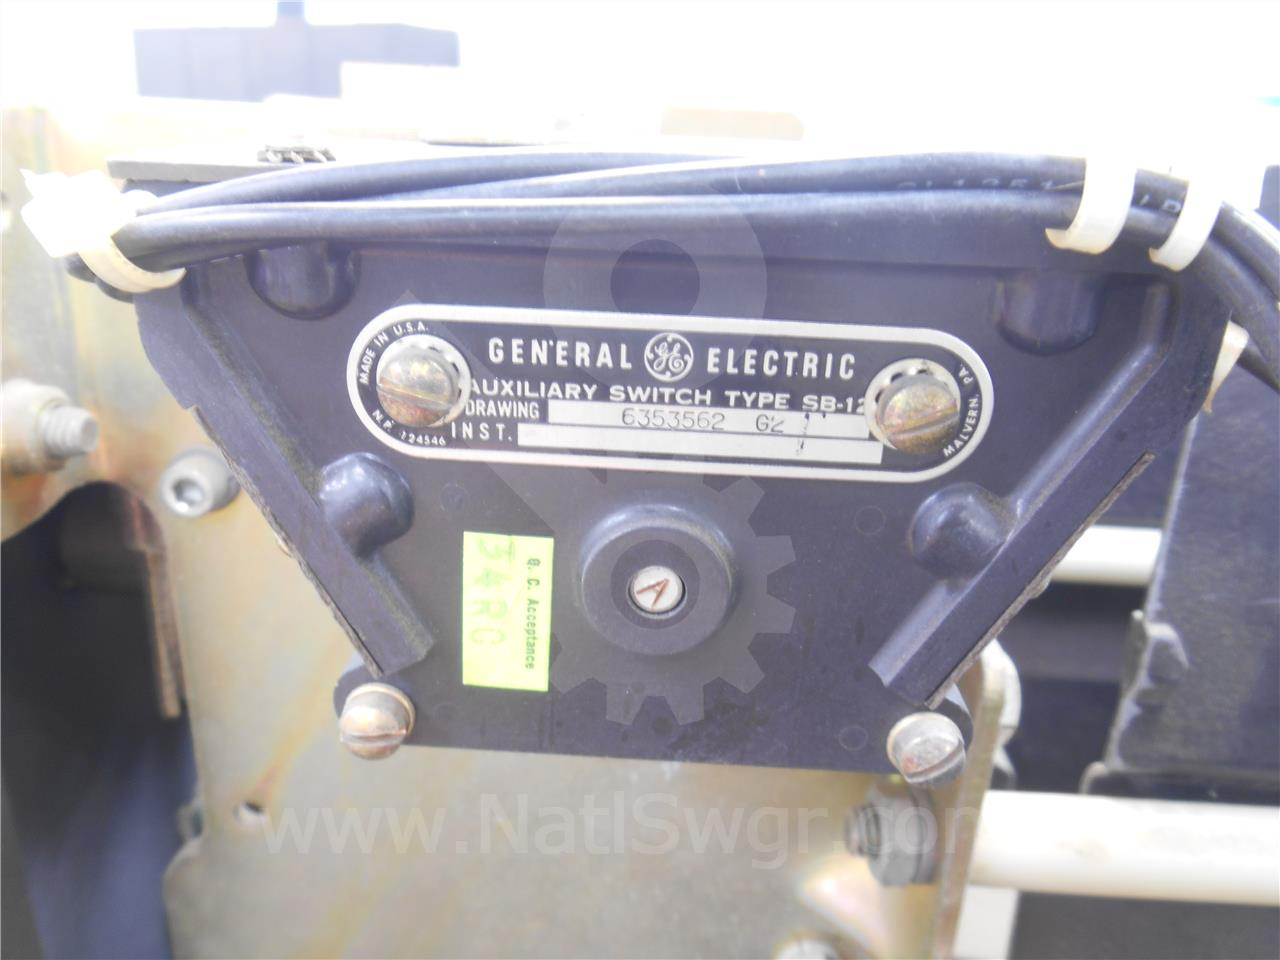 General Electric GE SB-12 AUXILIARY SWITCH 2NO/2NC